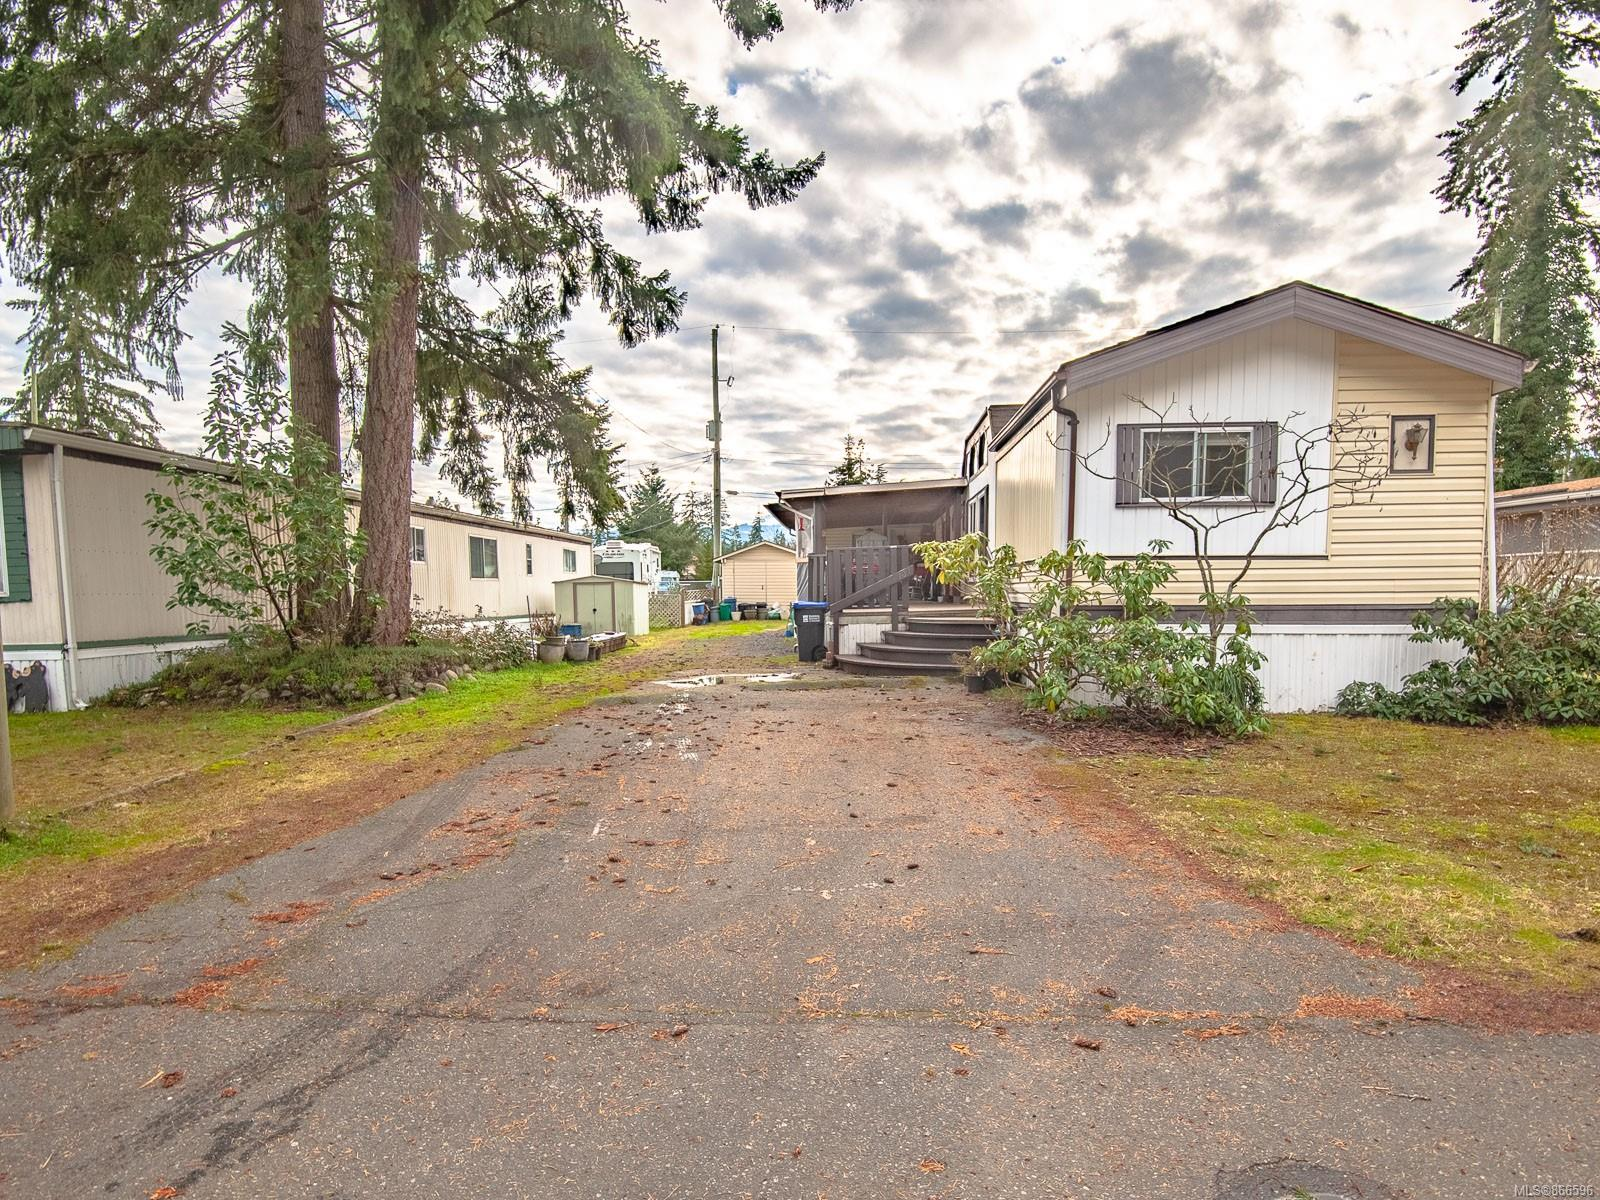 131 - 1736 Timberlands Road, Extension, Nanaimo photo number 2